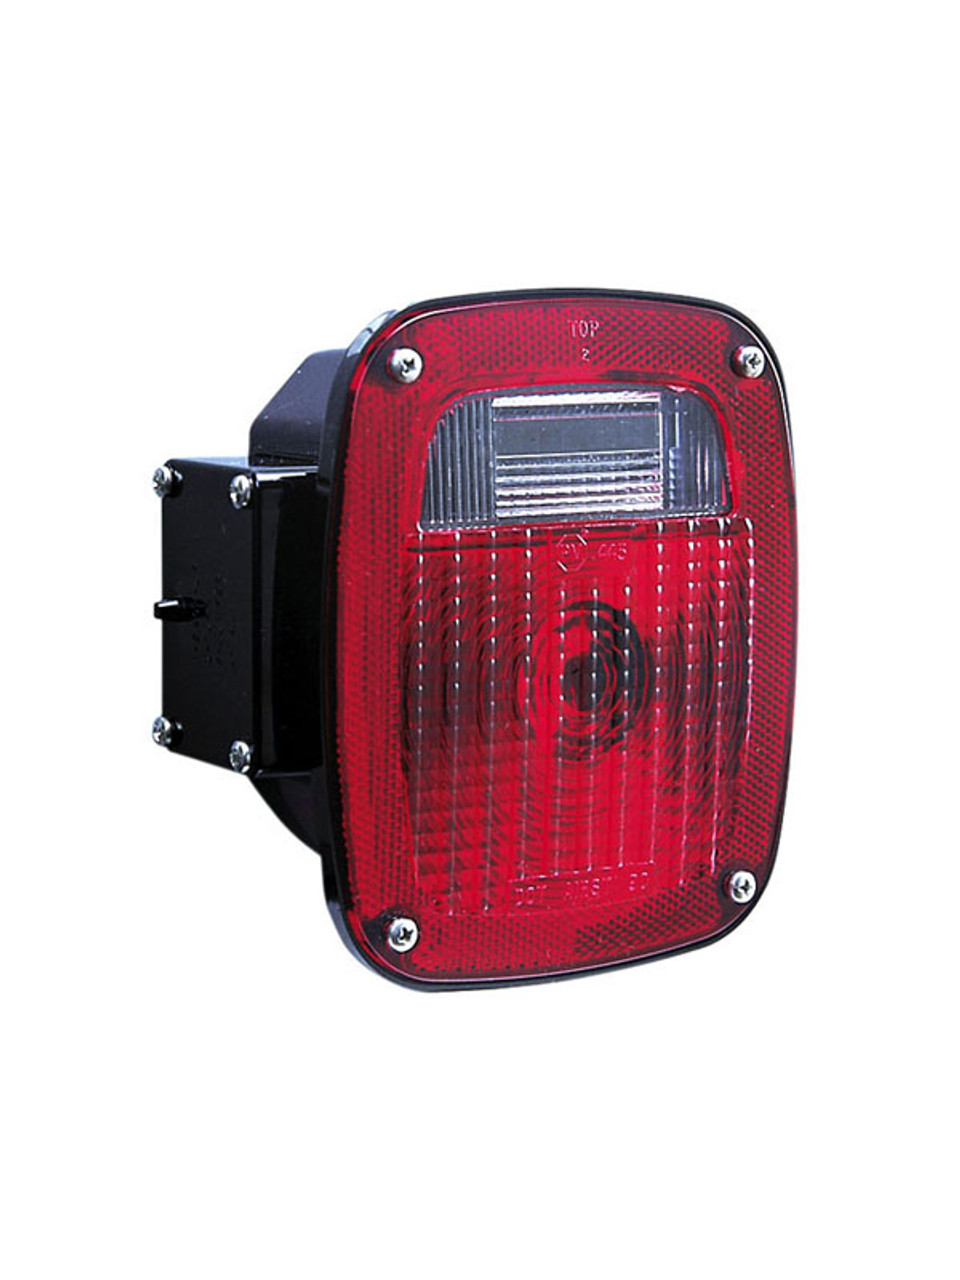 442 --- Combination Vehicle Tail Light- Right Hand